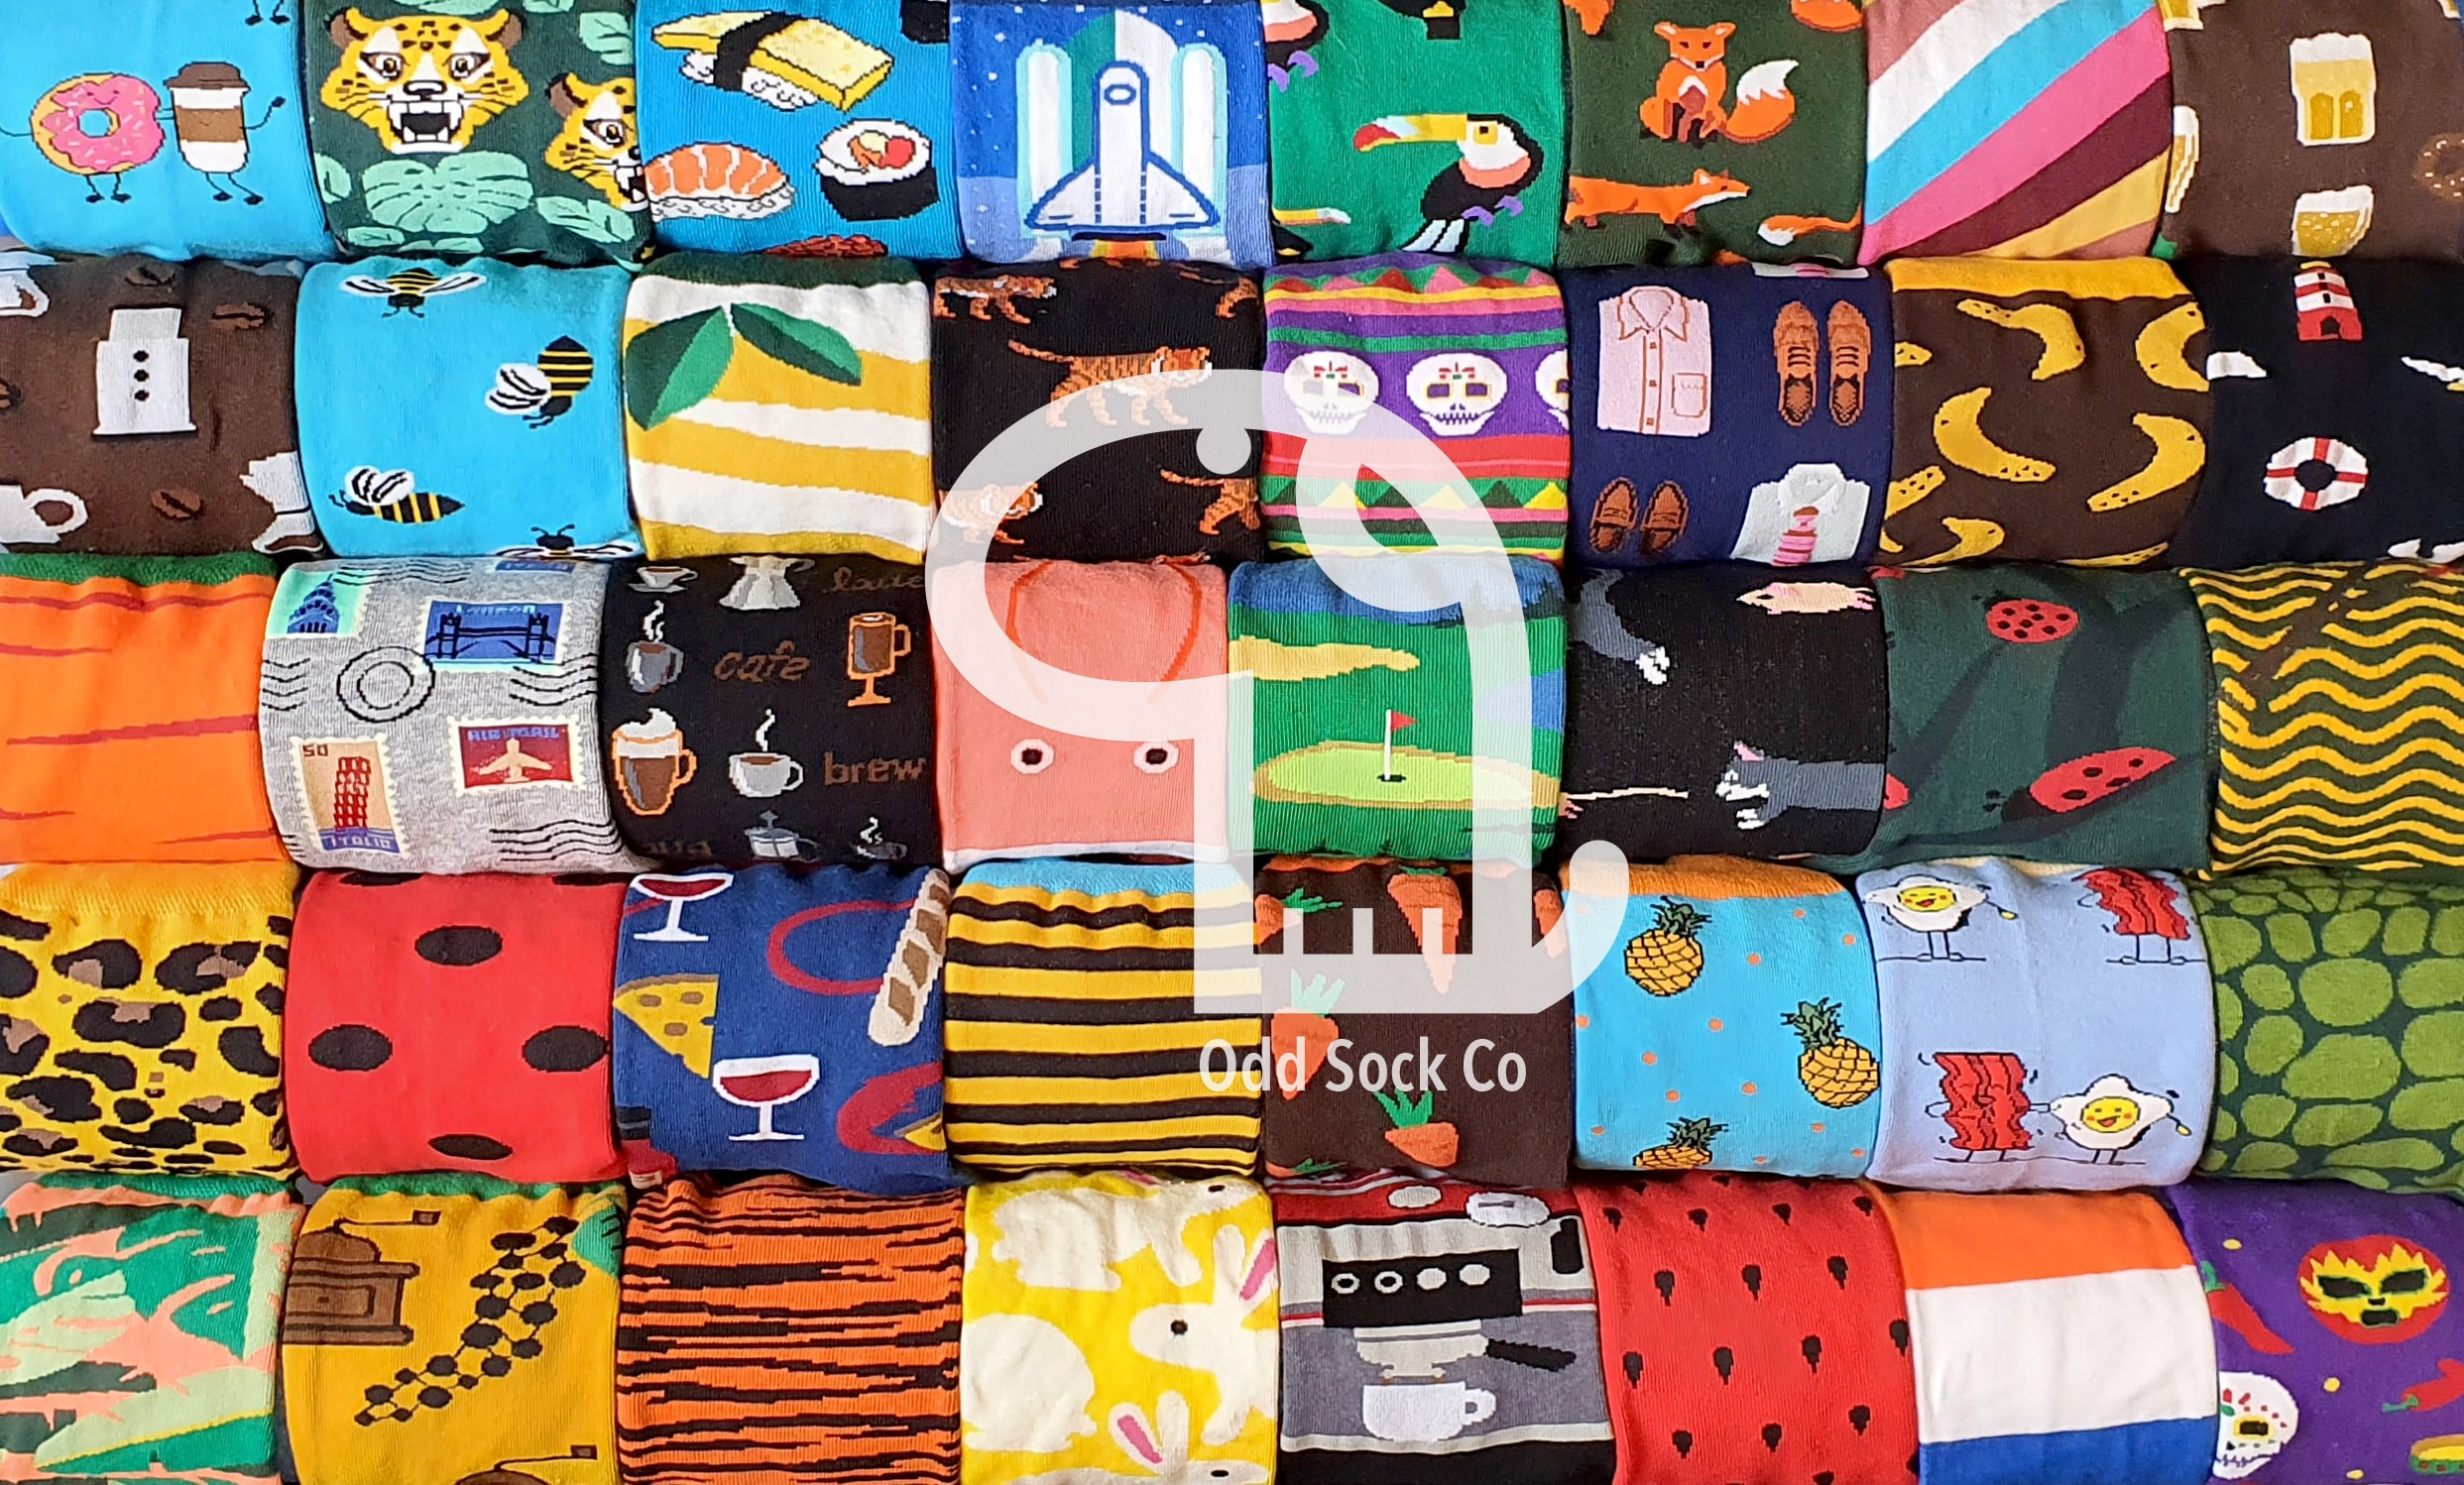 Oddy Oddsock logo on a photograph of rolls of socks